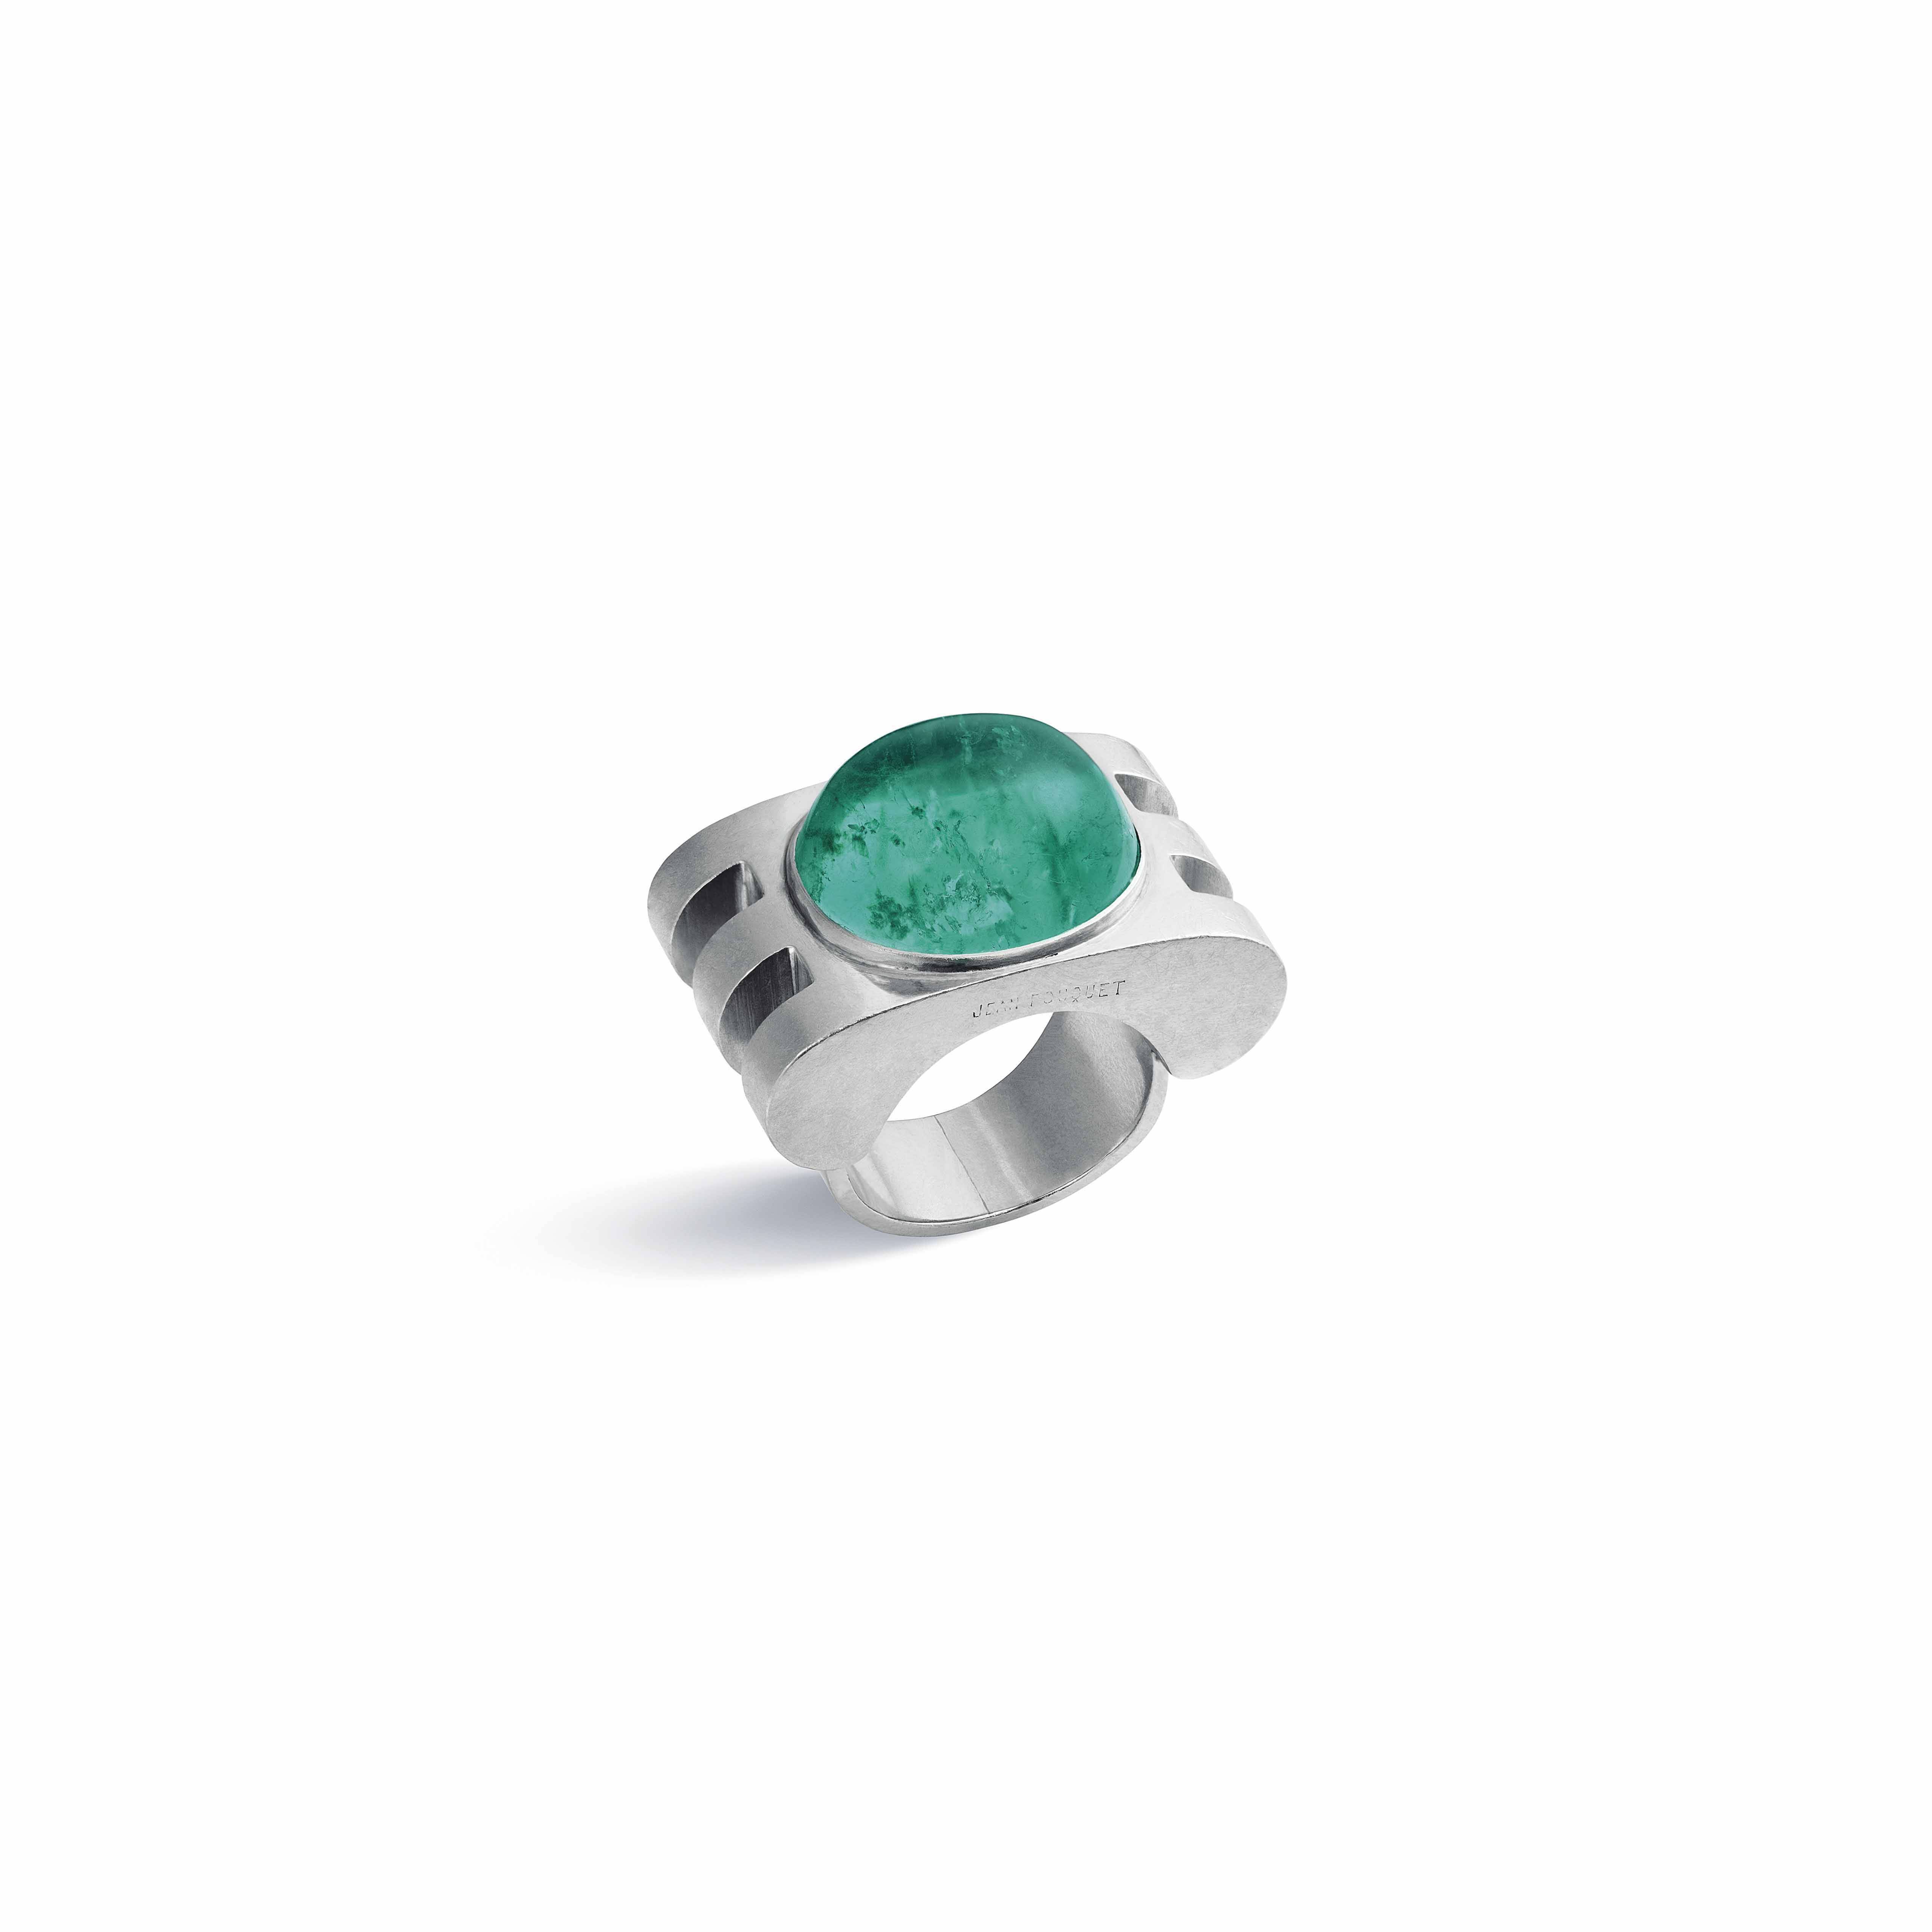 AN EMERALD RING, BY JEAN FOUQUET